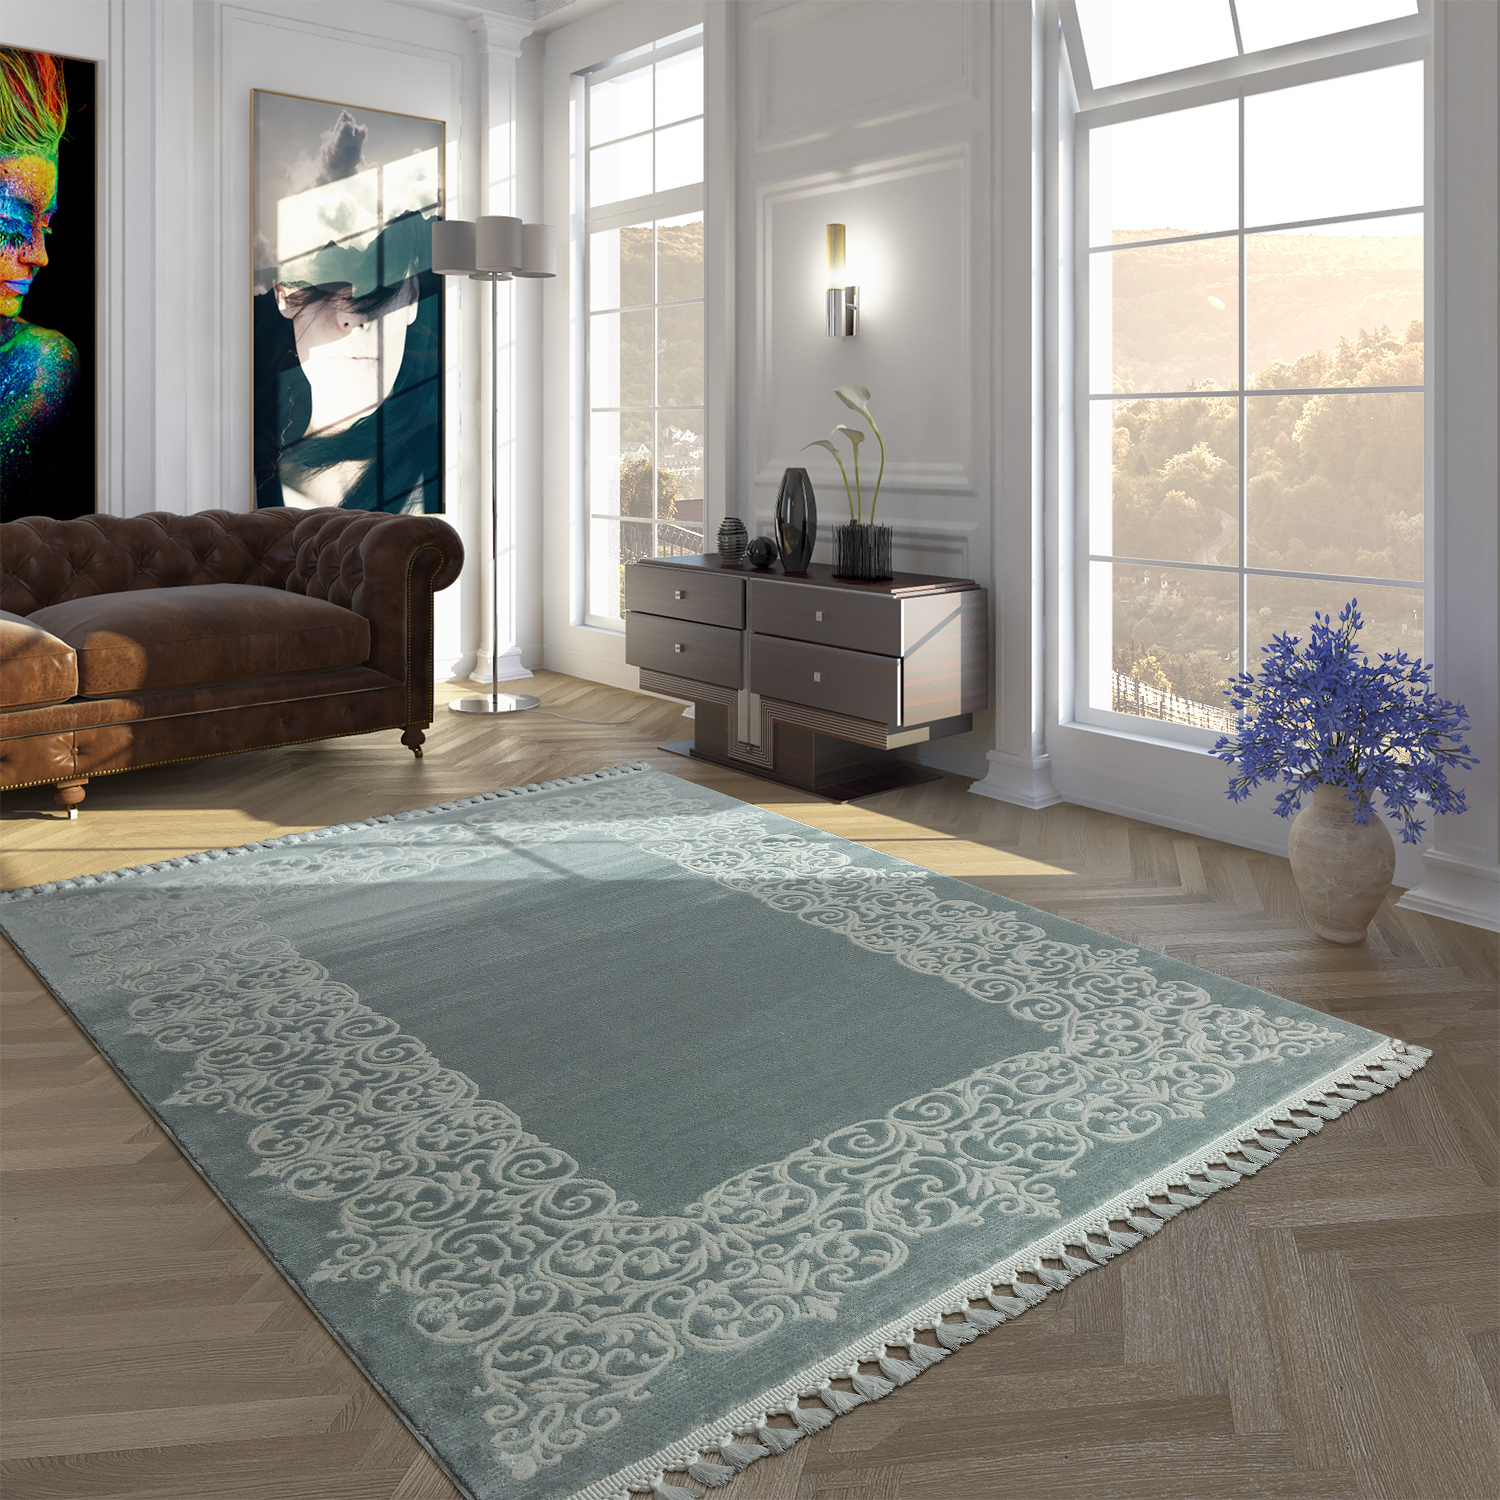 Vintage Polyacrylic Rug Floral Pattern High-Quality Modern Fringes Pastel Turquoise